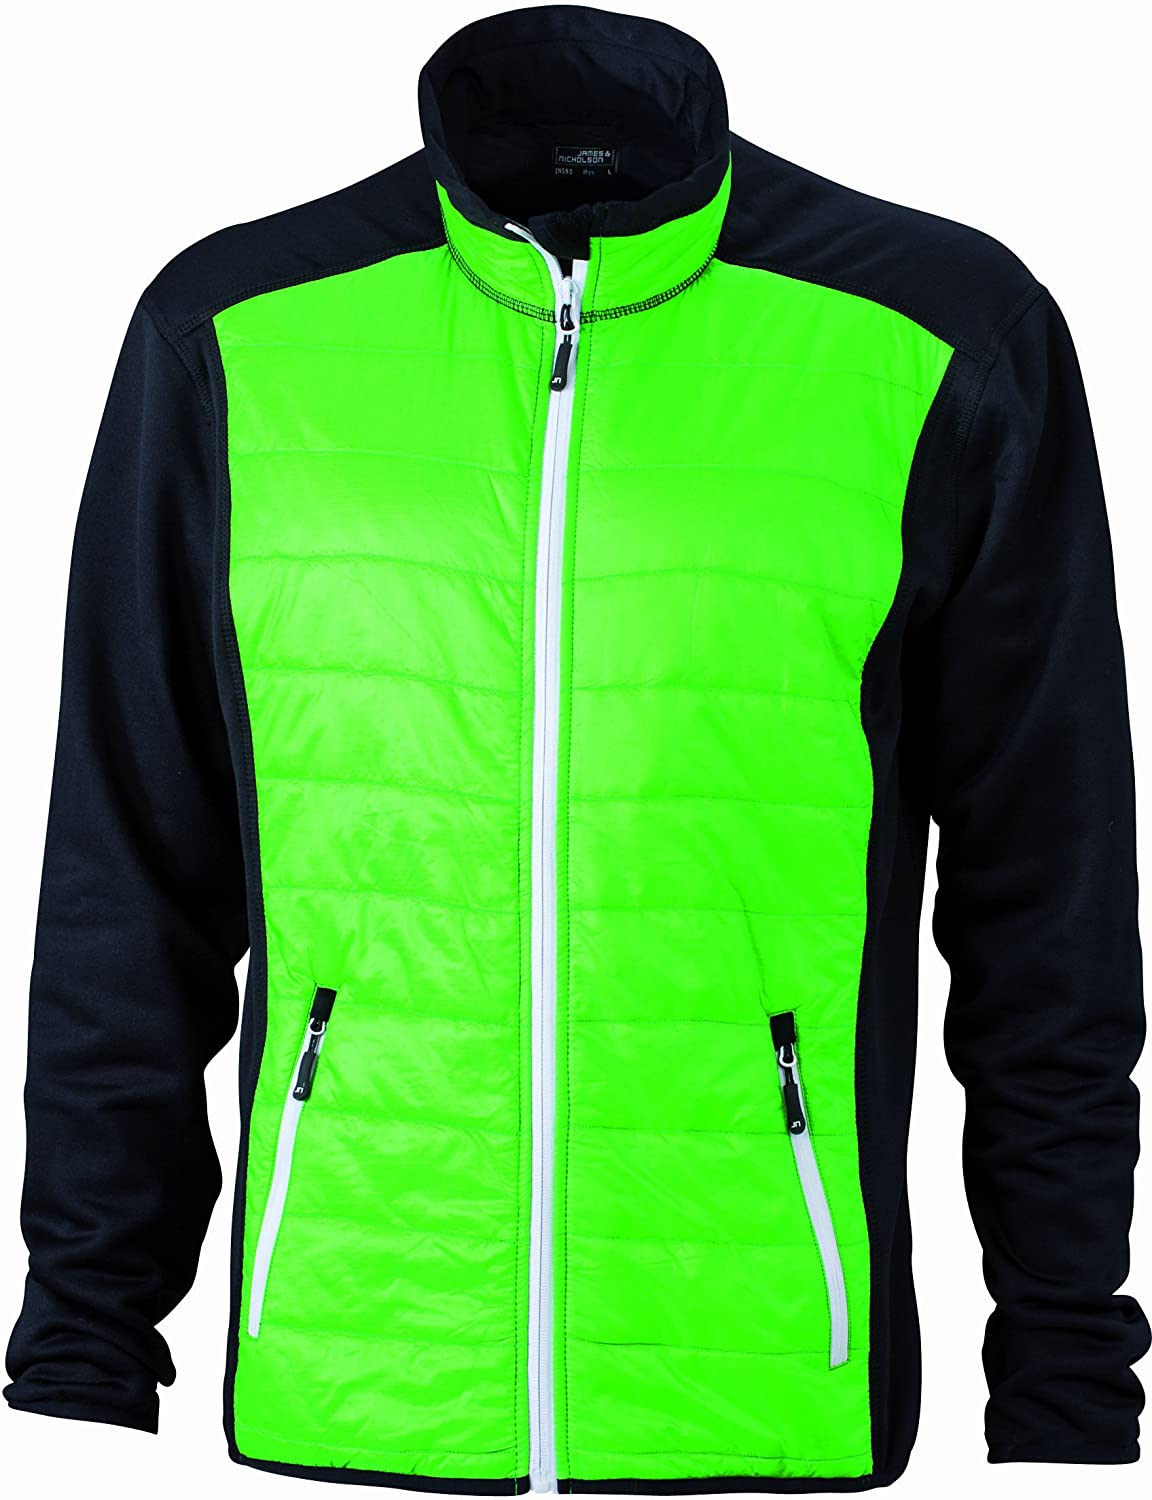 James & Nicholson Men's Jacke Stretchfleece Men's Hybrid Jacket Jacket:  Amazon.co.uk: Clothing